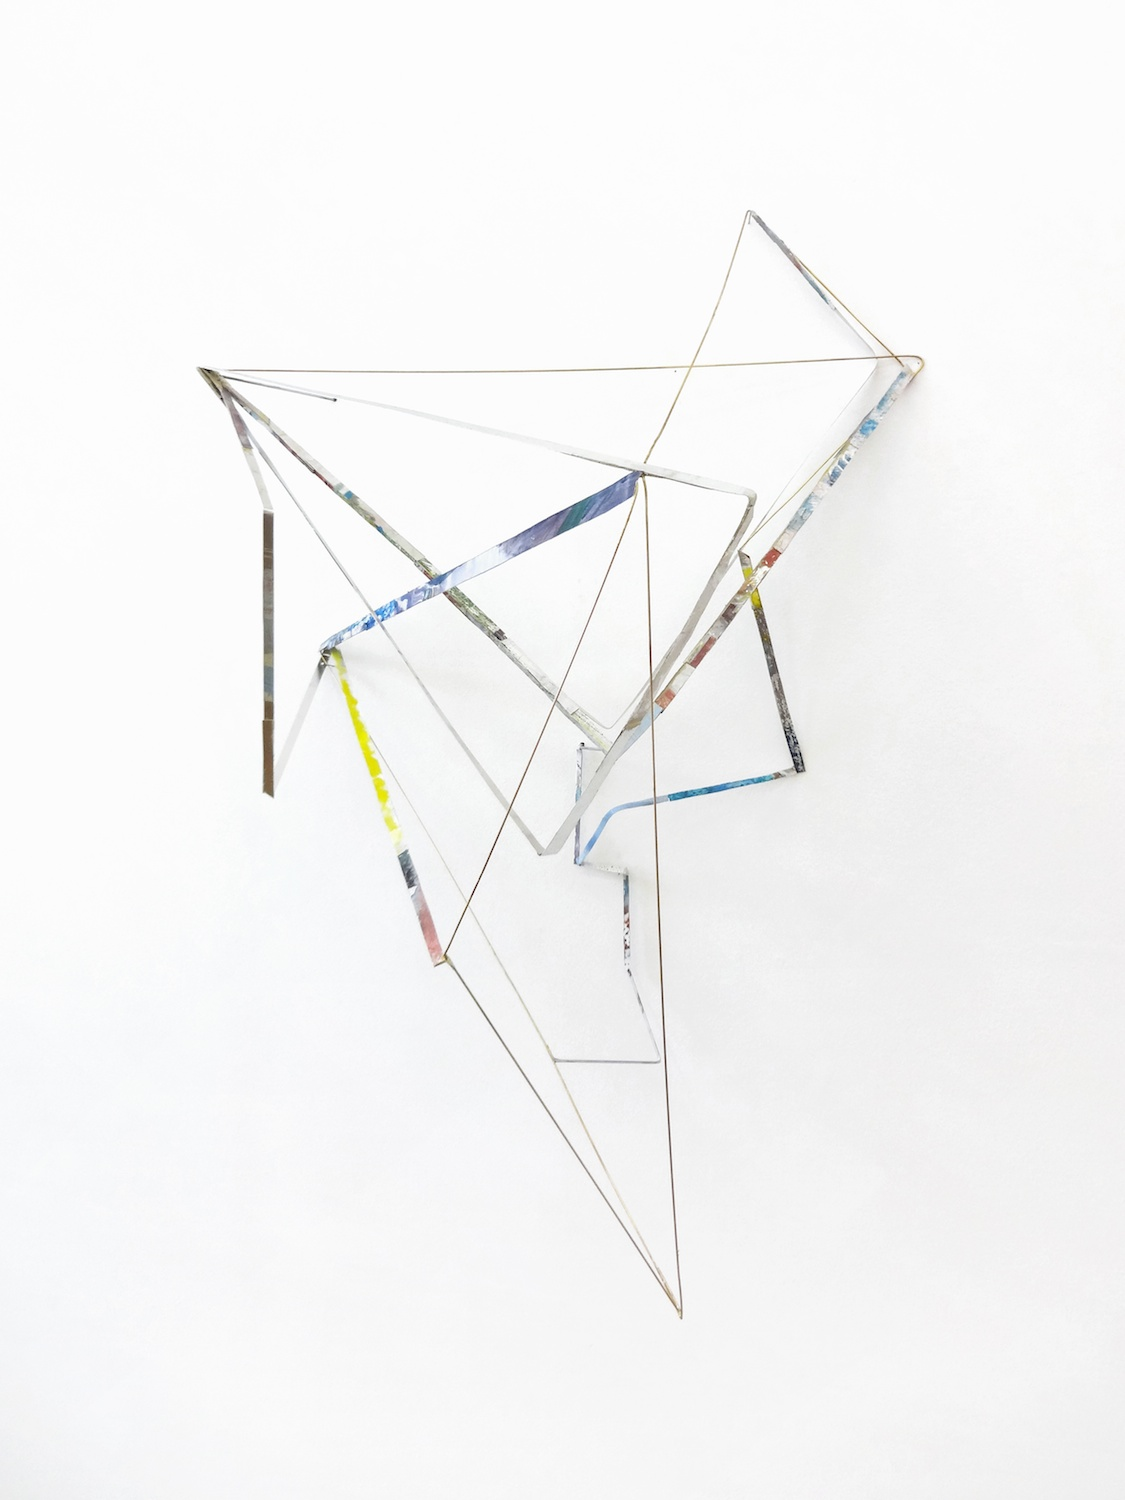 Sara Barker  Composition with furling symphonia  2013 Brass and steel rod, aluminum sheet, gold powder, gouache, watercolor, metal primer, filler 42 ½h x 28 ⅓w x 15 ¾d in SB001